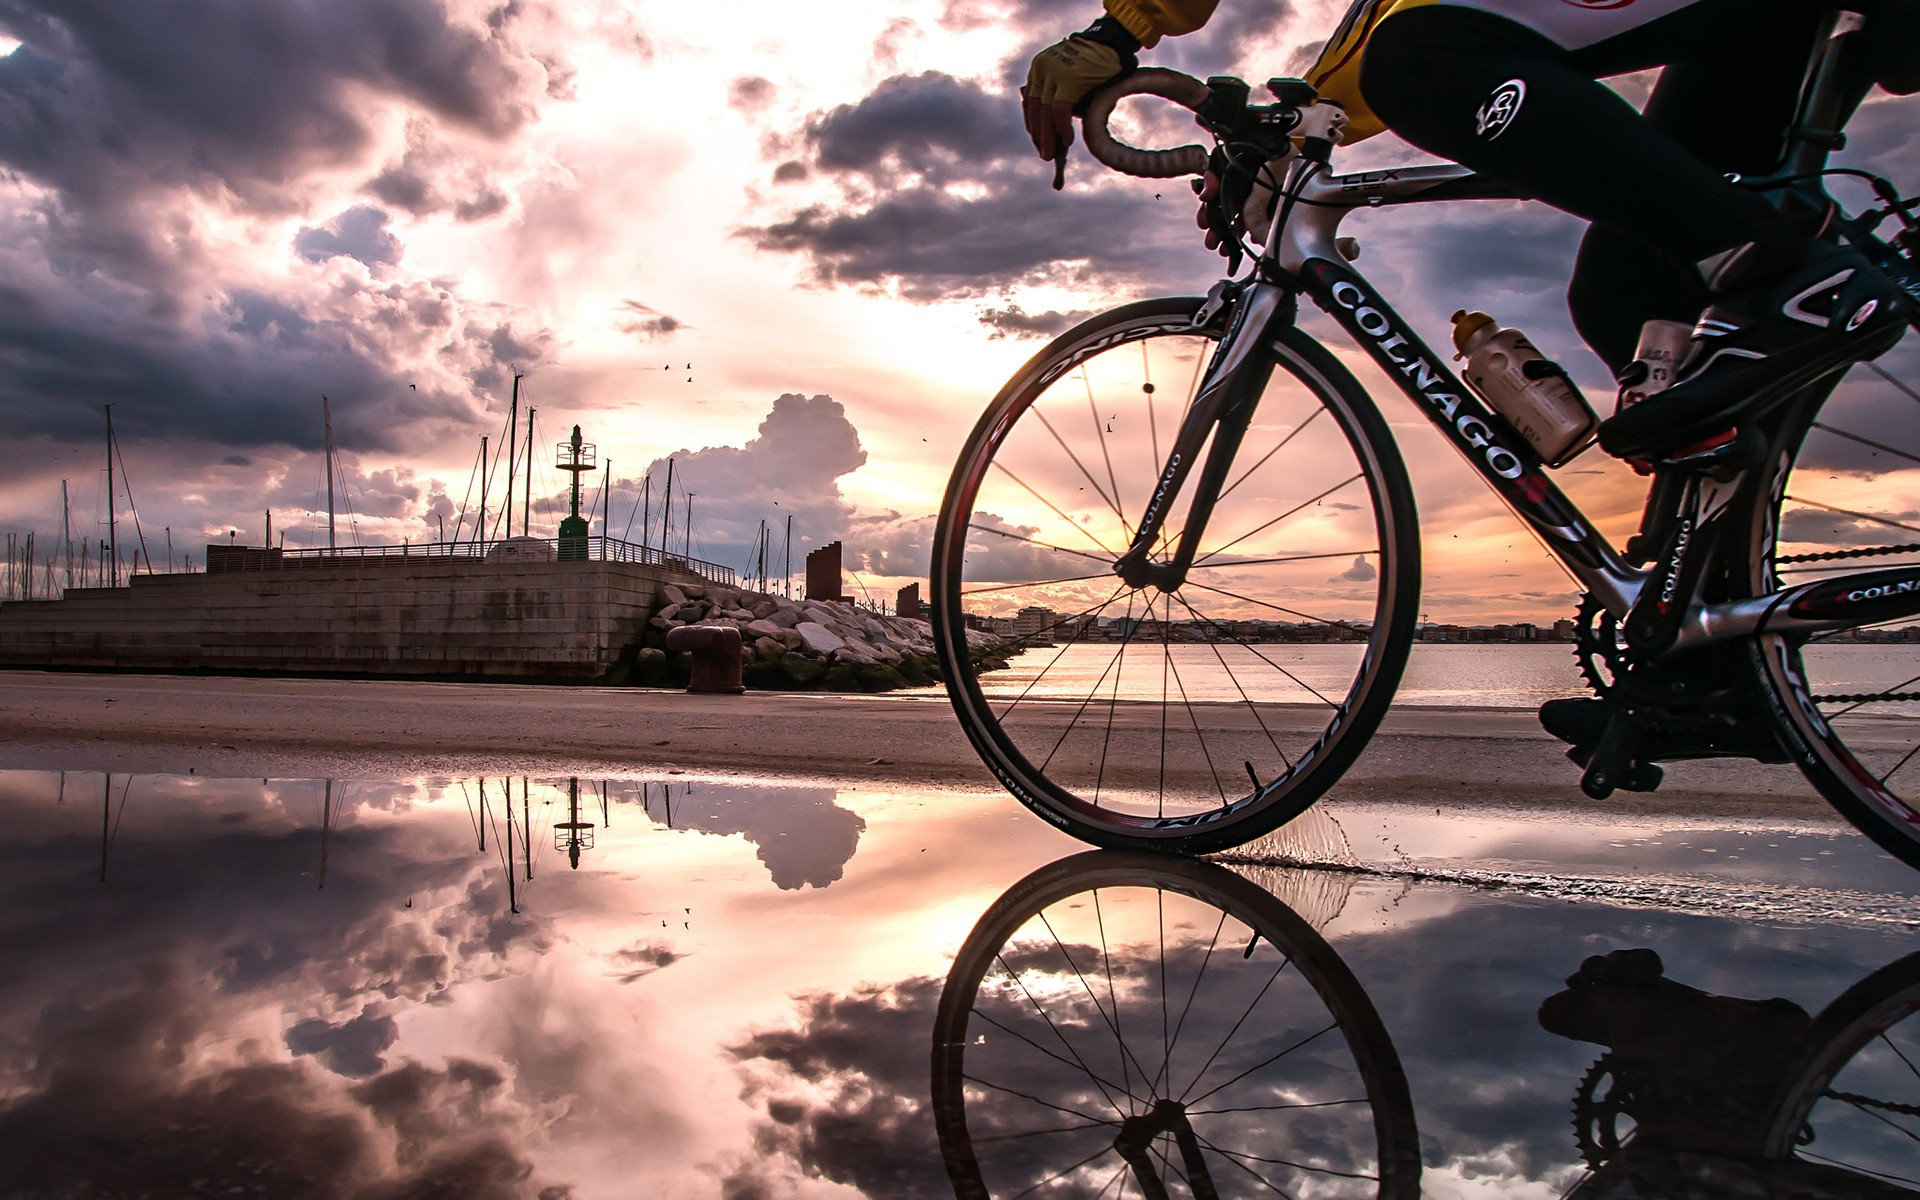 cycling-wallpaper-018.jpg